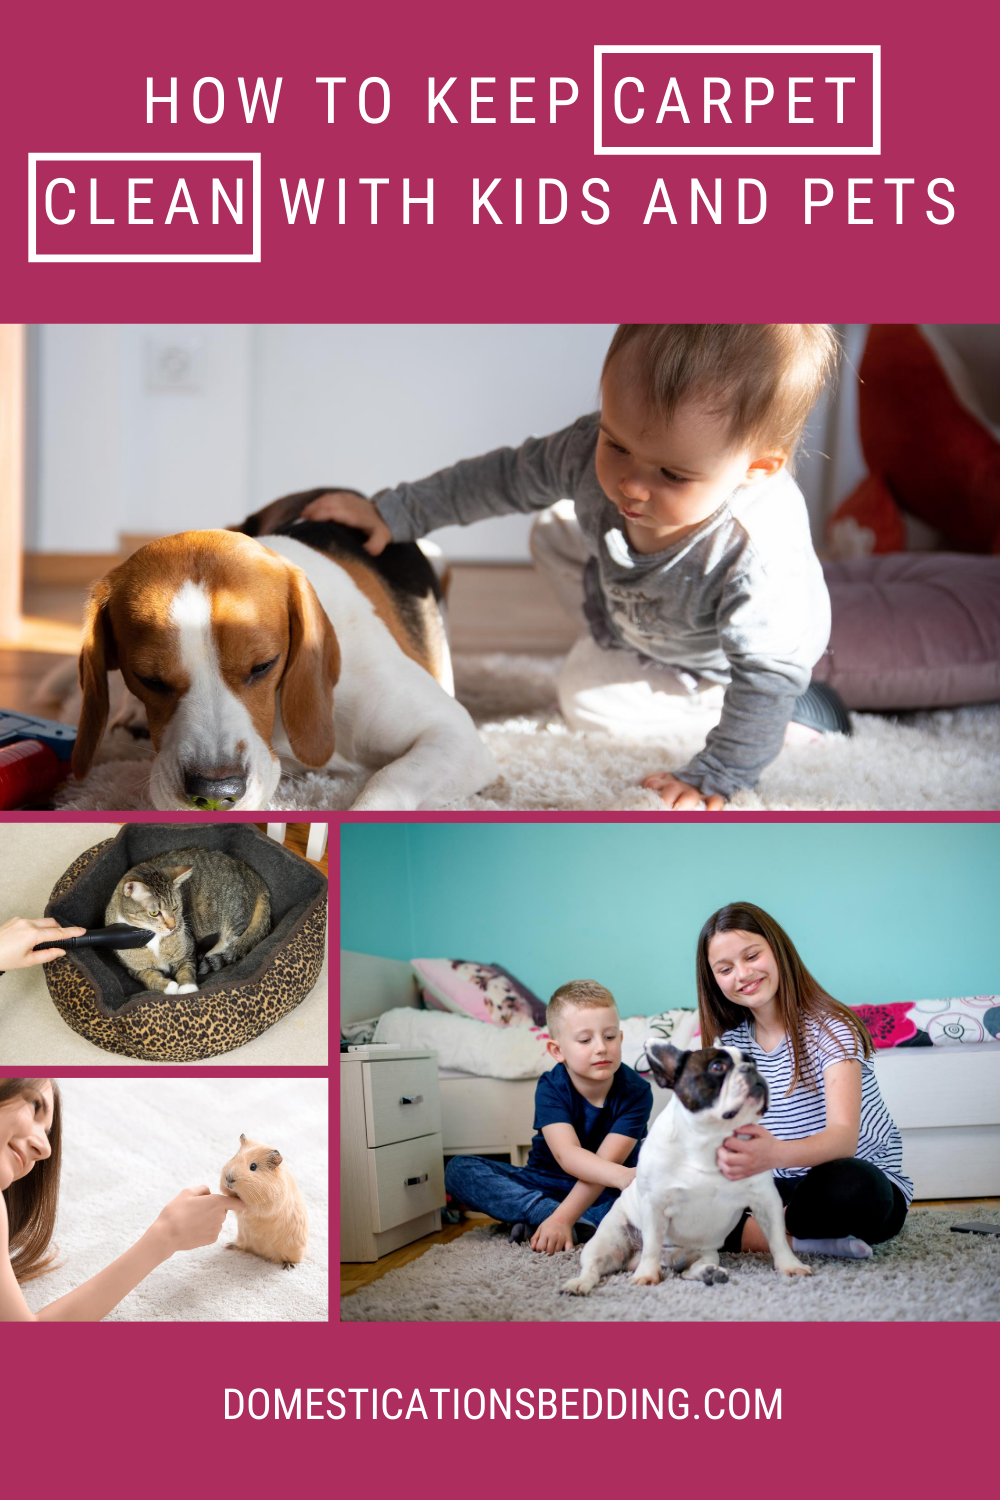 How to Keep Carpet Clean Even with Kids and Pets